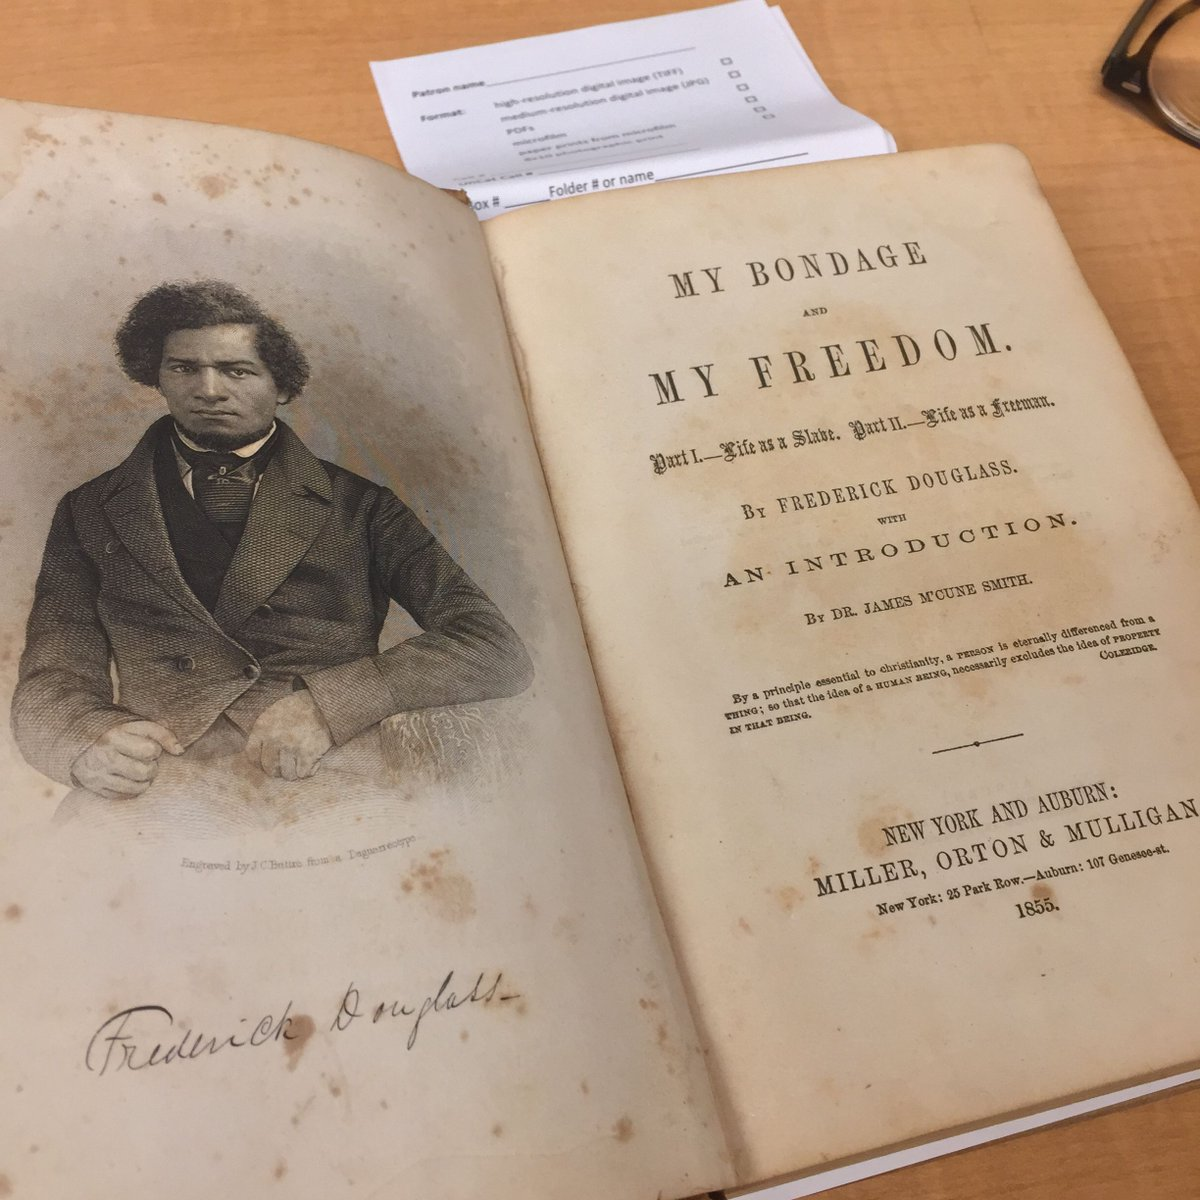 """ ... to use my voice, my pen, or my vote, to advocate the great and primary work of the universal and unconditional emancipation of my entire race."" Frederick Douglass, My Bondage and My Freedom, 1855  from library of William Pickens, with his notes"